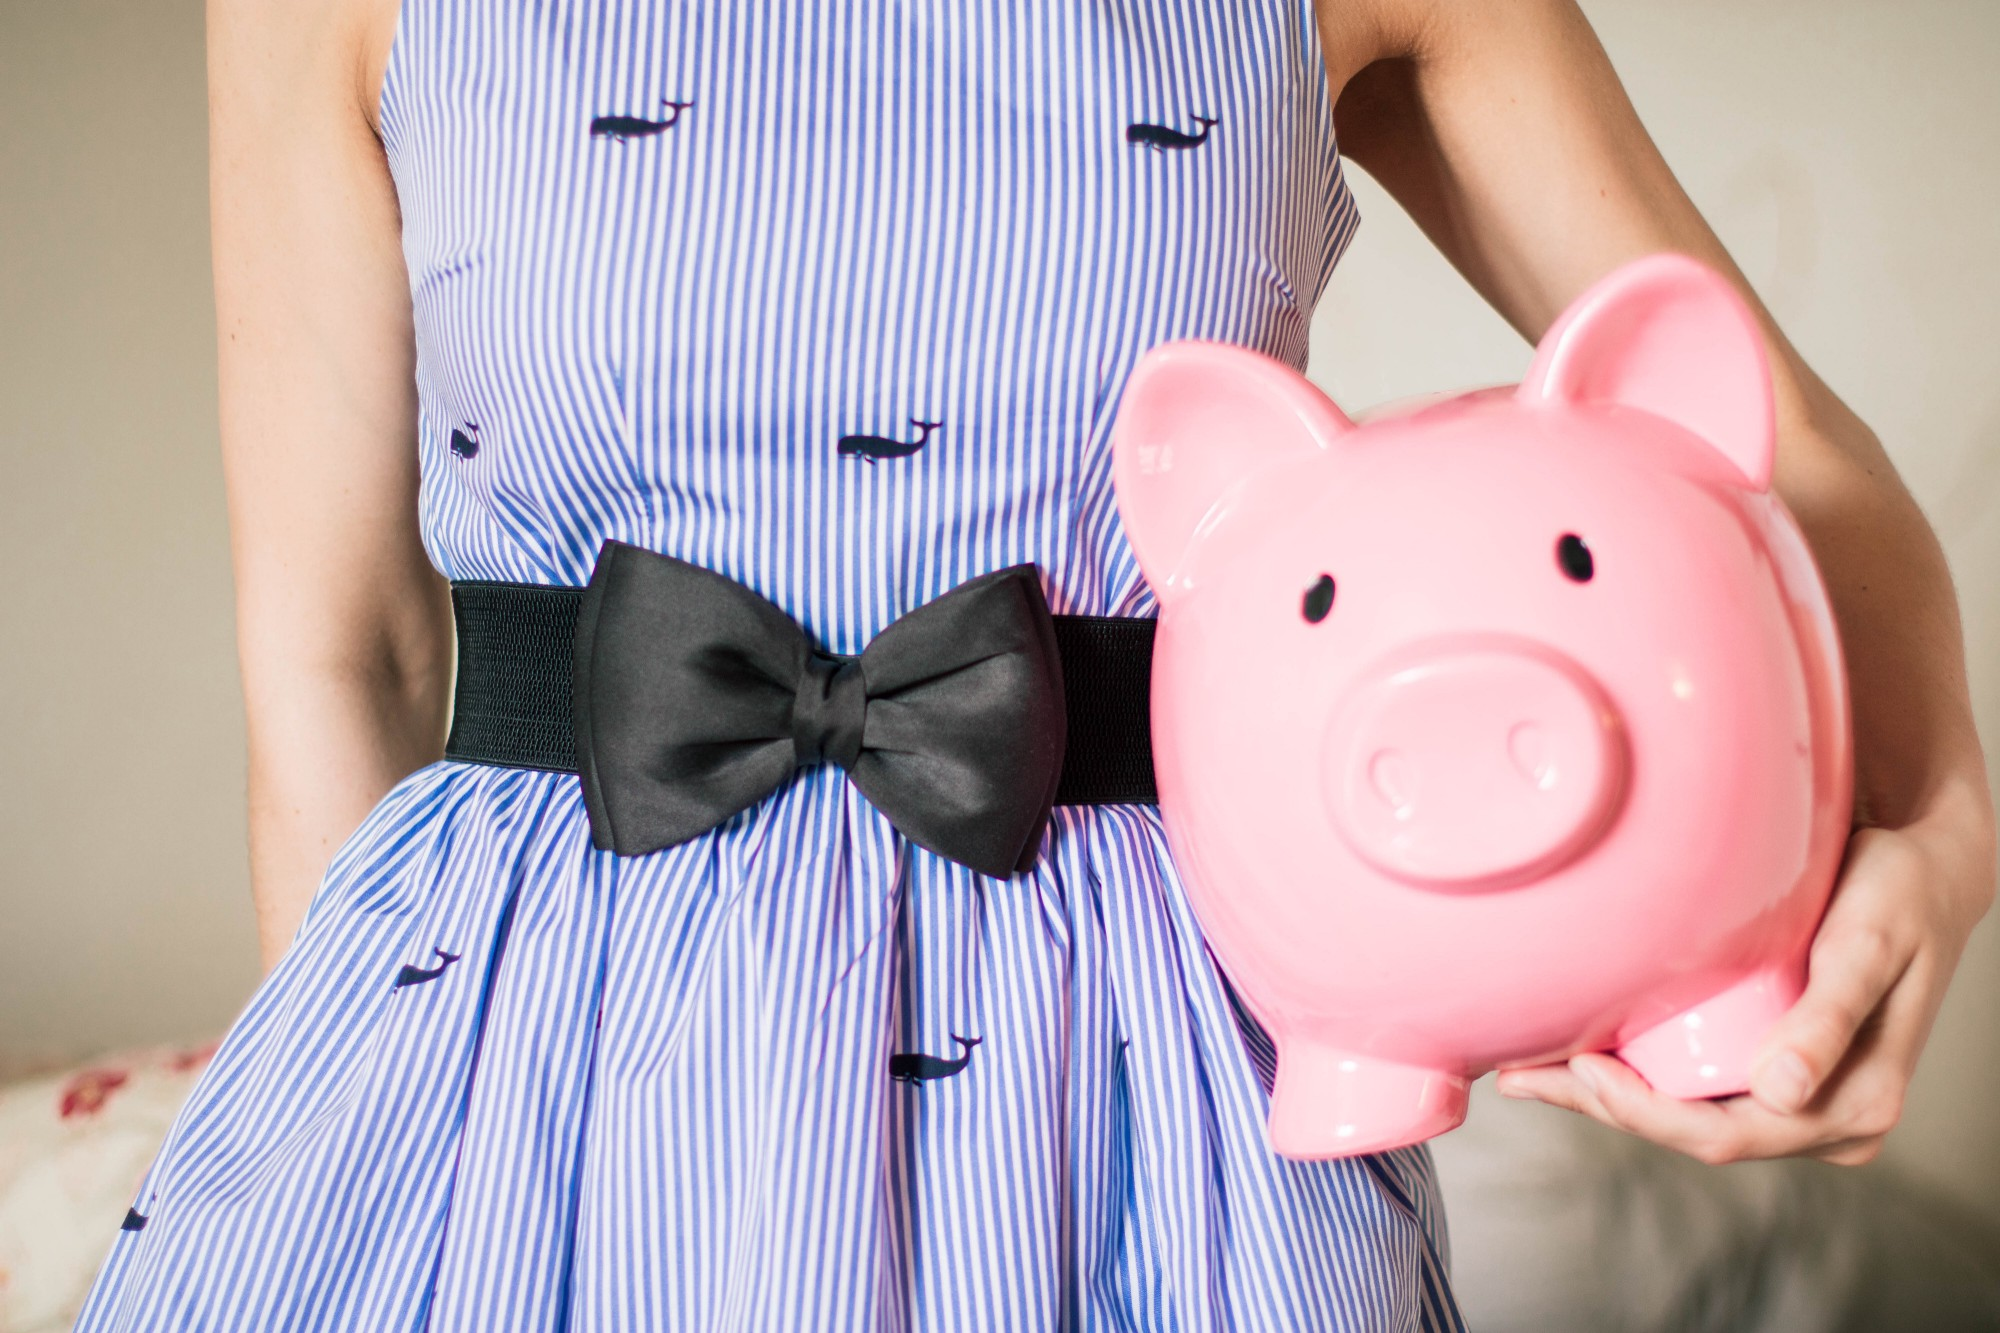 A young woman in a blue pinstriped dress with a black bow belt holding a pink piggy coin jar at her hip.